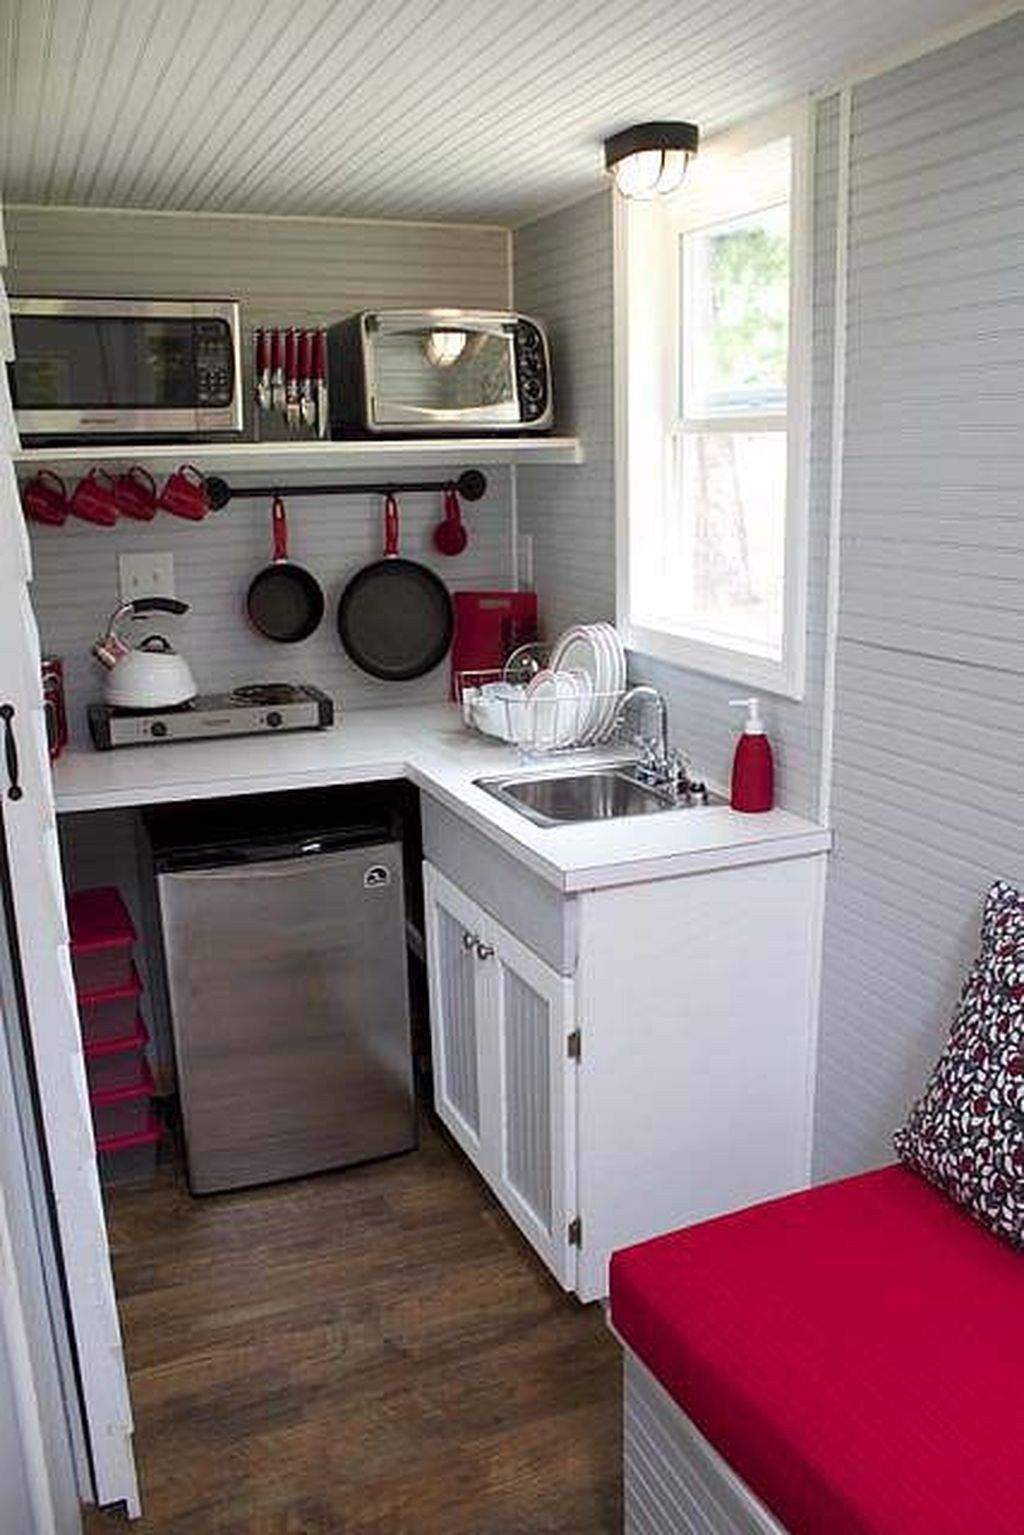 20 Gorgoeus Tiny House Small Kitchen Ideas Trendhmdcr Tiny House Kitchen Kitchen Design Small Kitchen Remodel Small